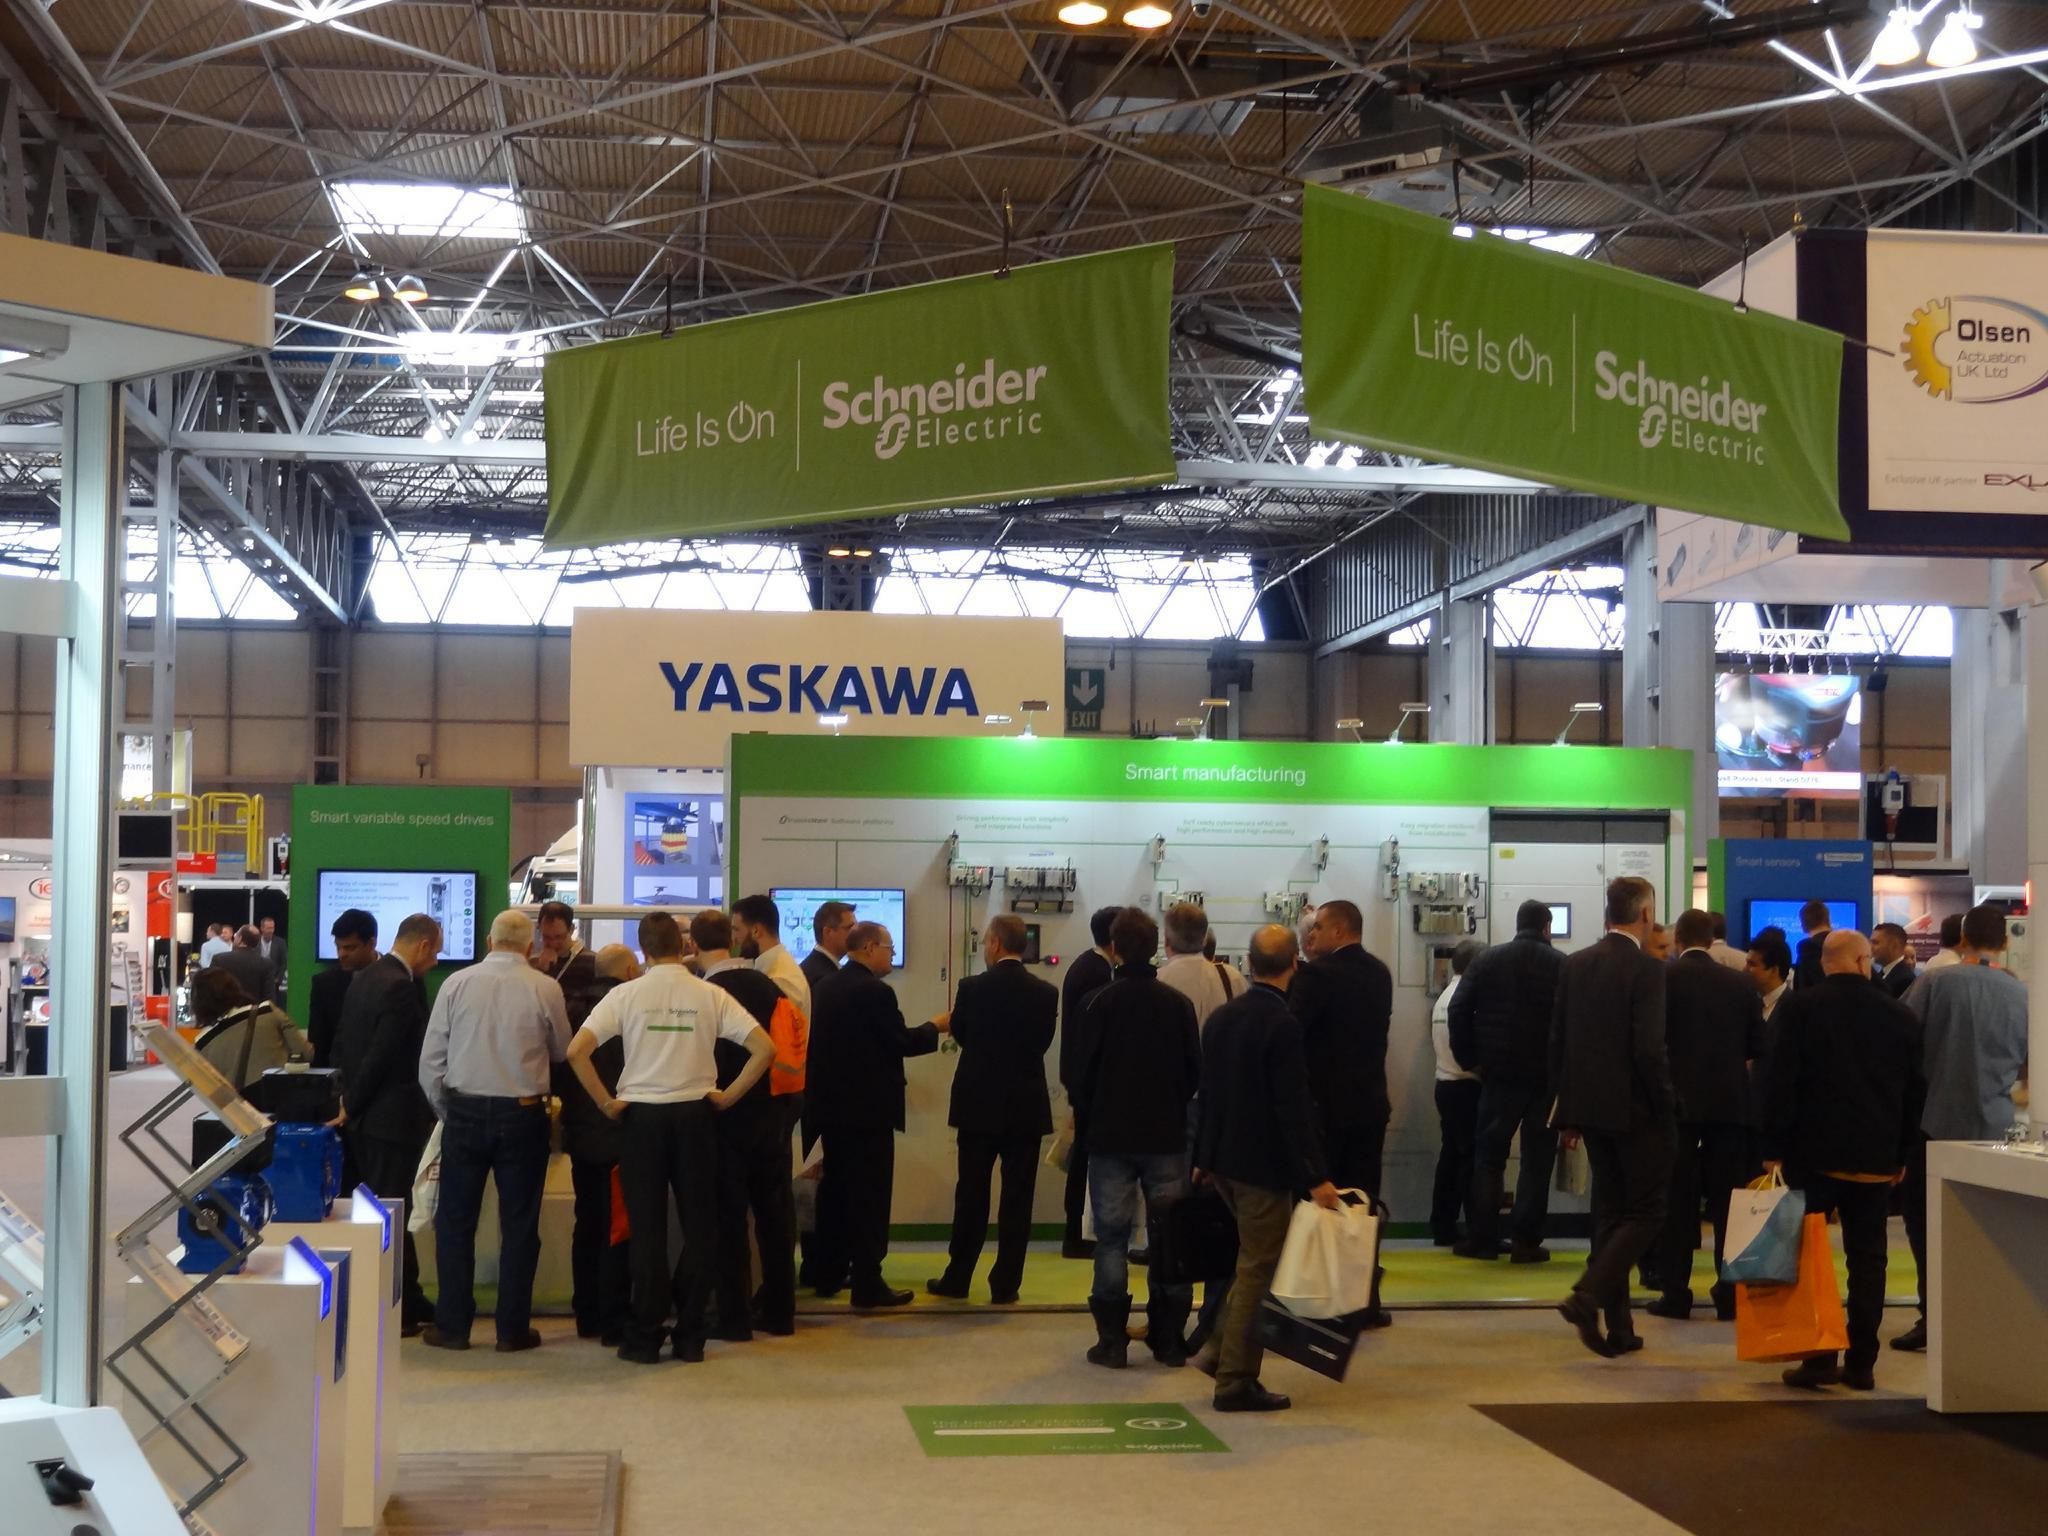 Manufacturing extravaganza set to return to NEC in April 2018